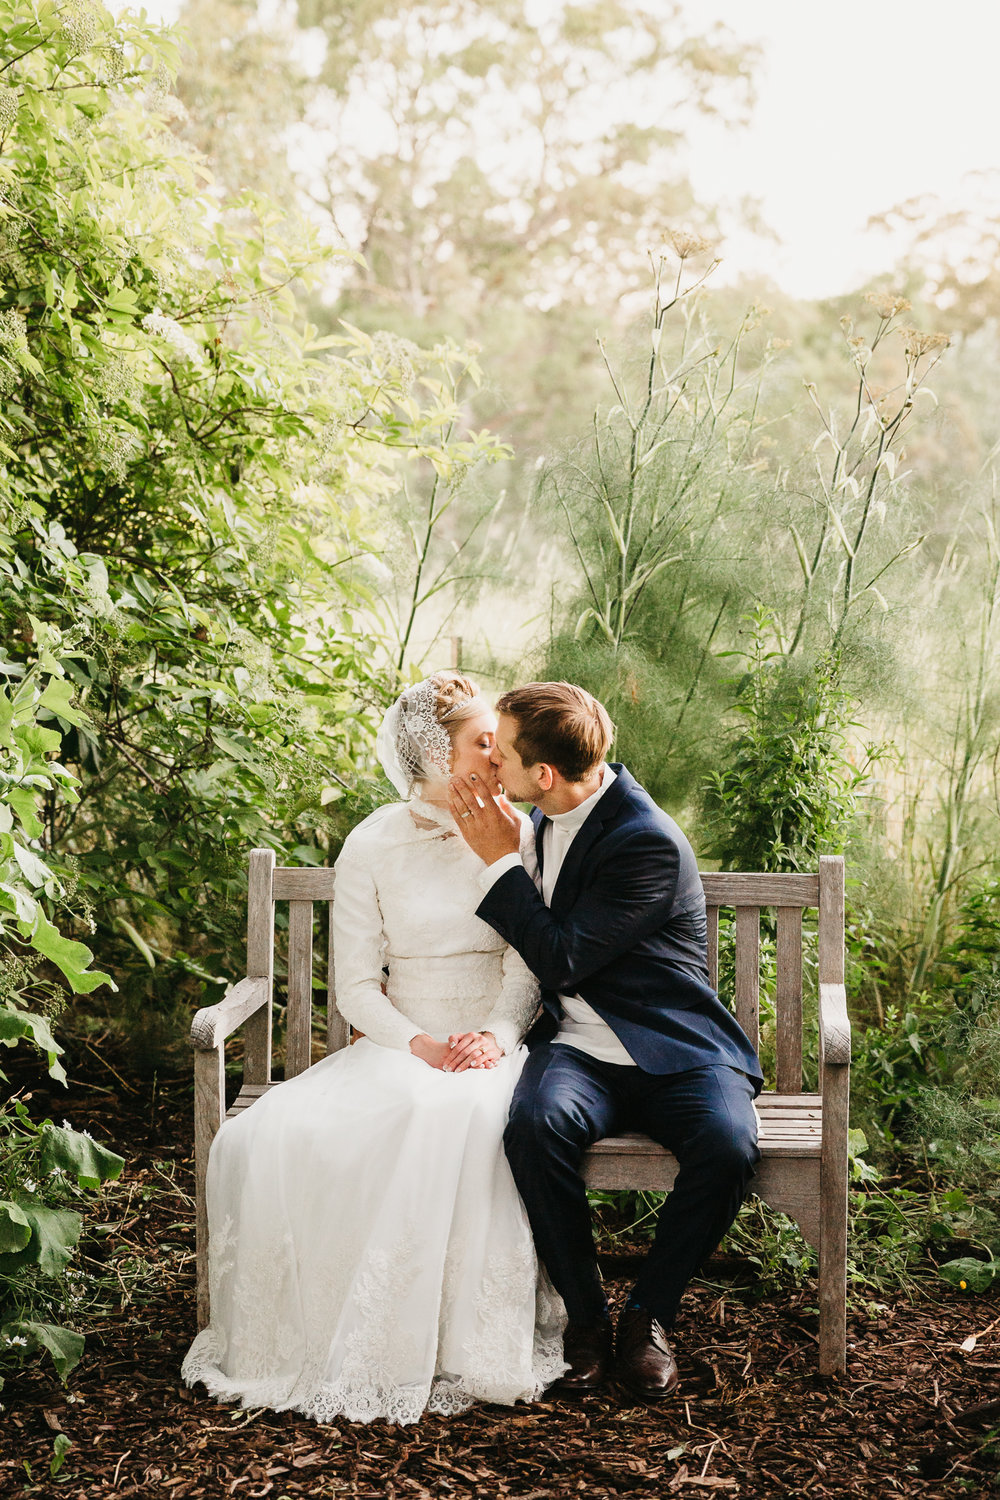 Jane Portnoff Photography: Adelaide Wedding Photography